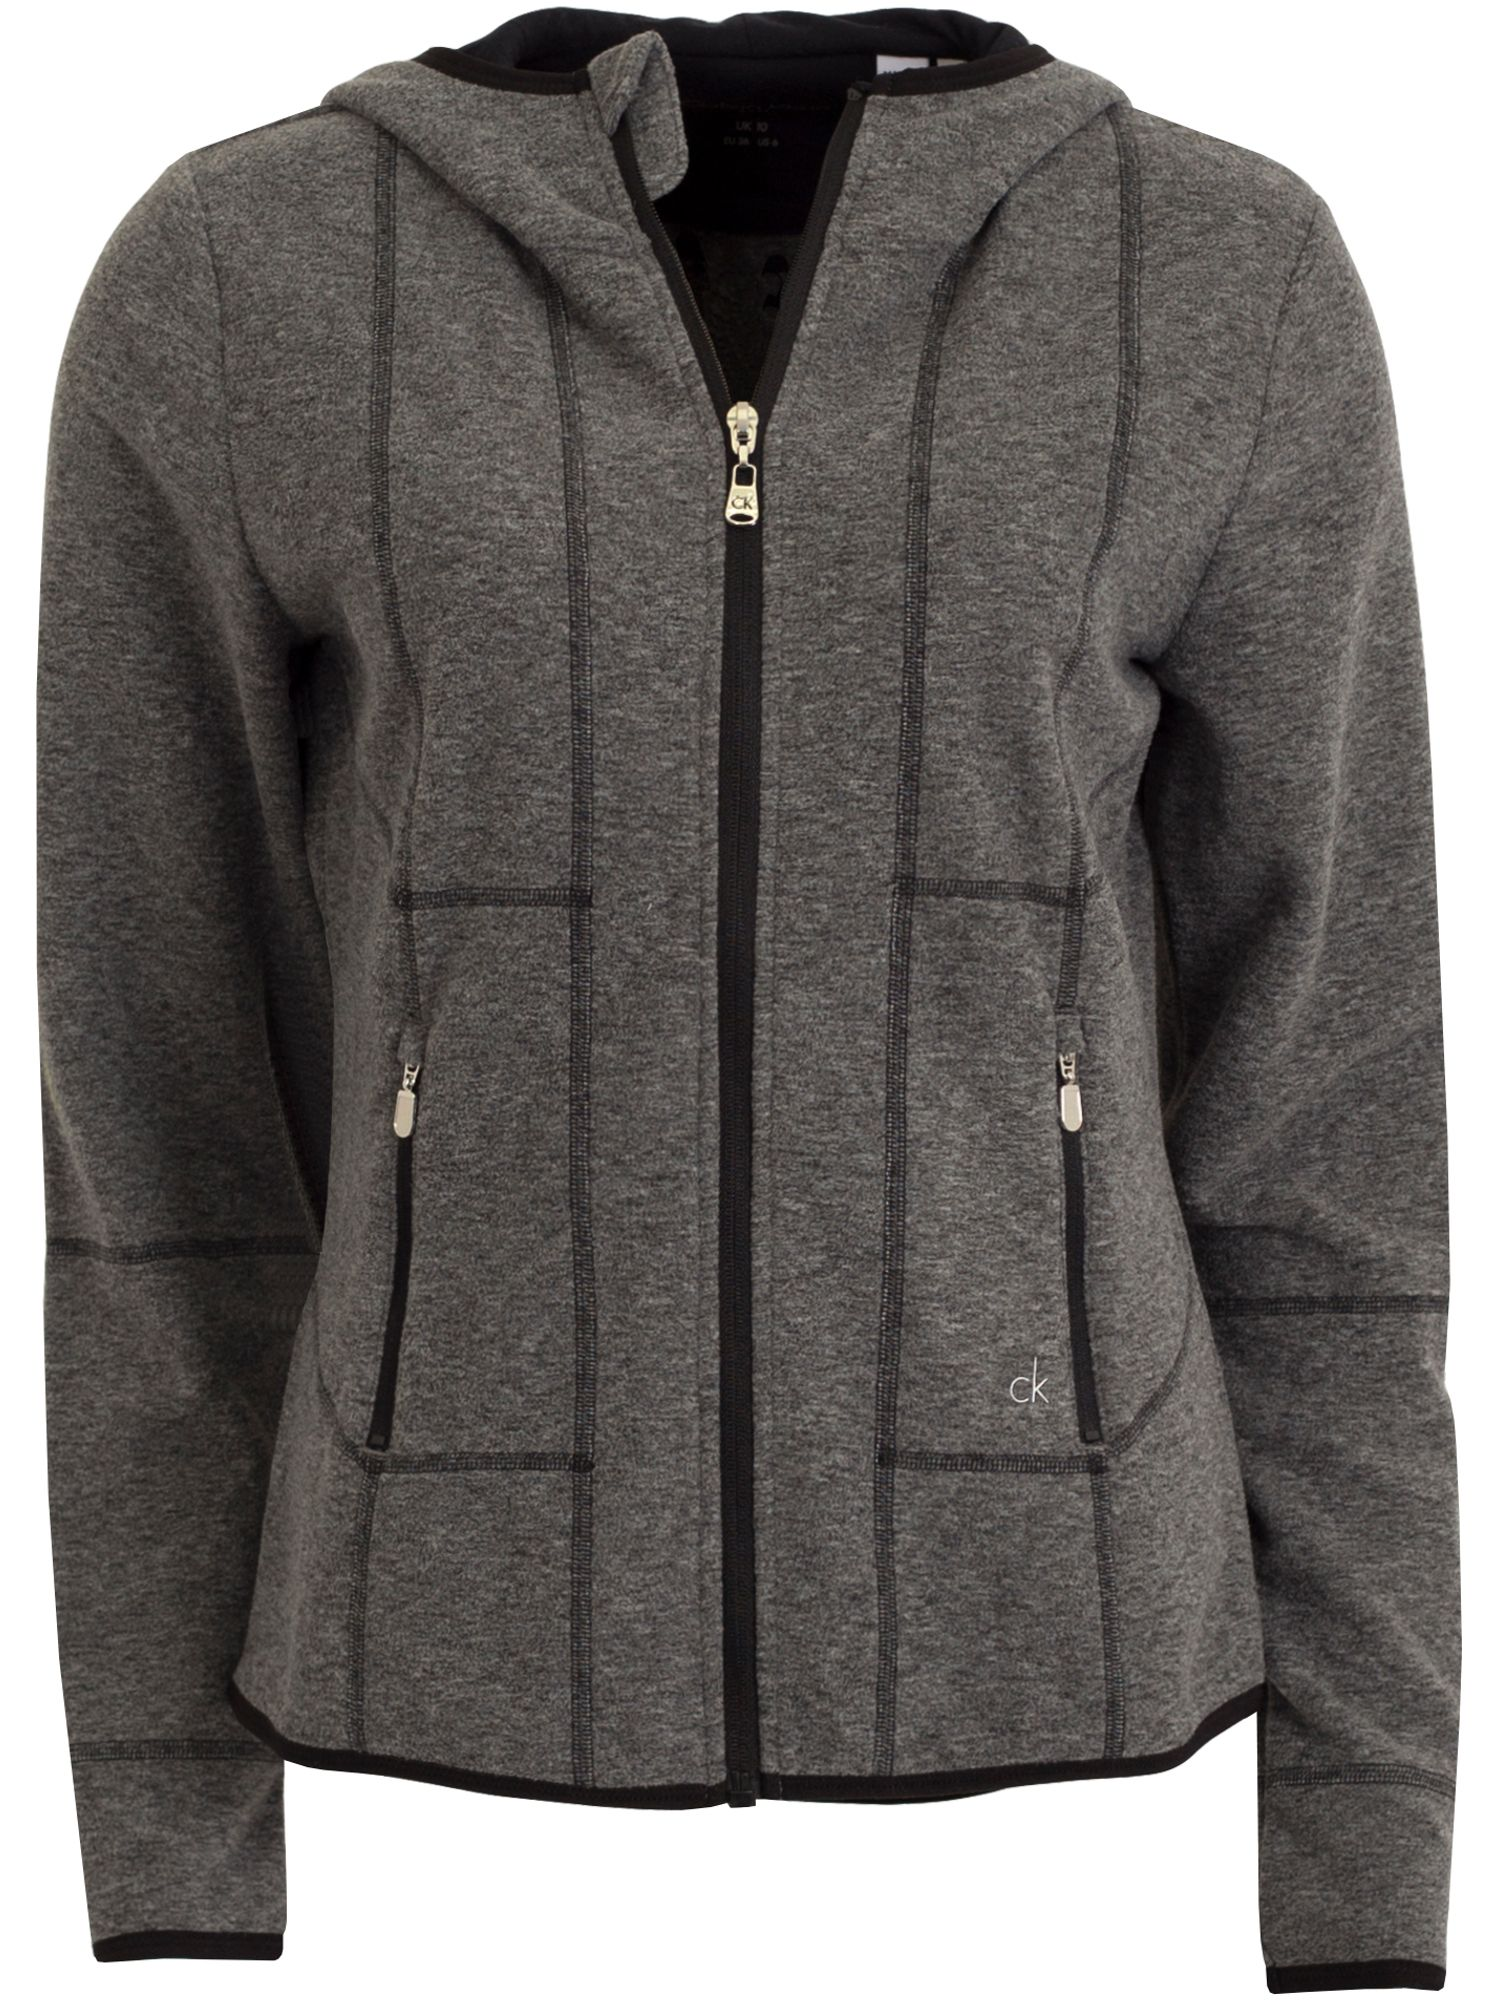 Calvin Klein Golf Hooded Fleece Jacket, Grey